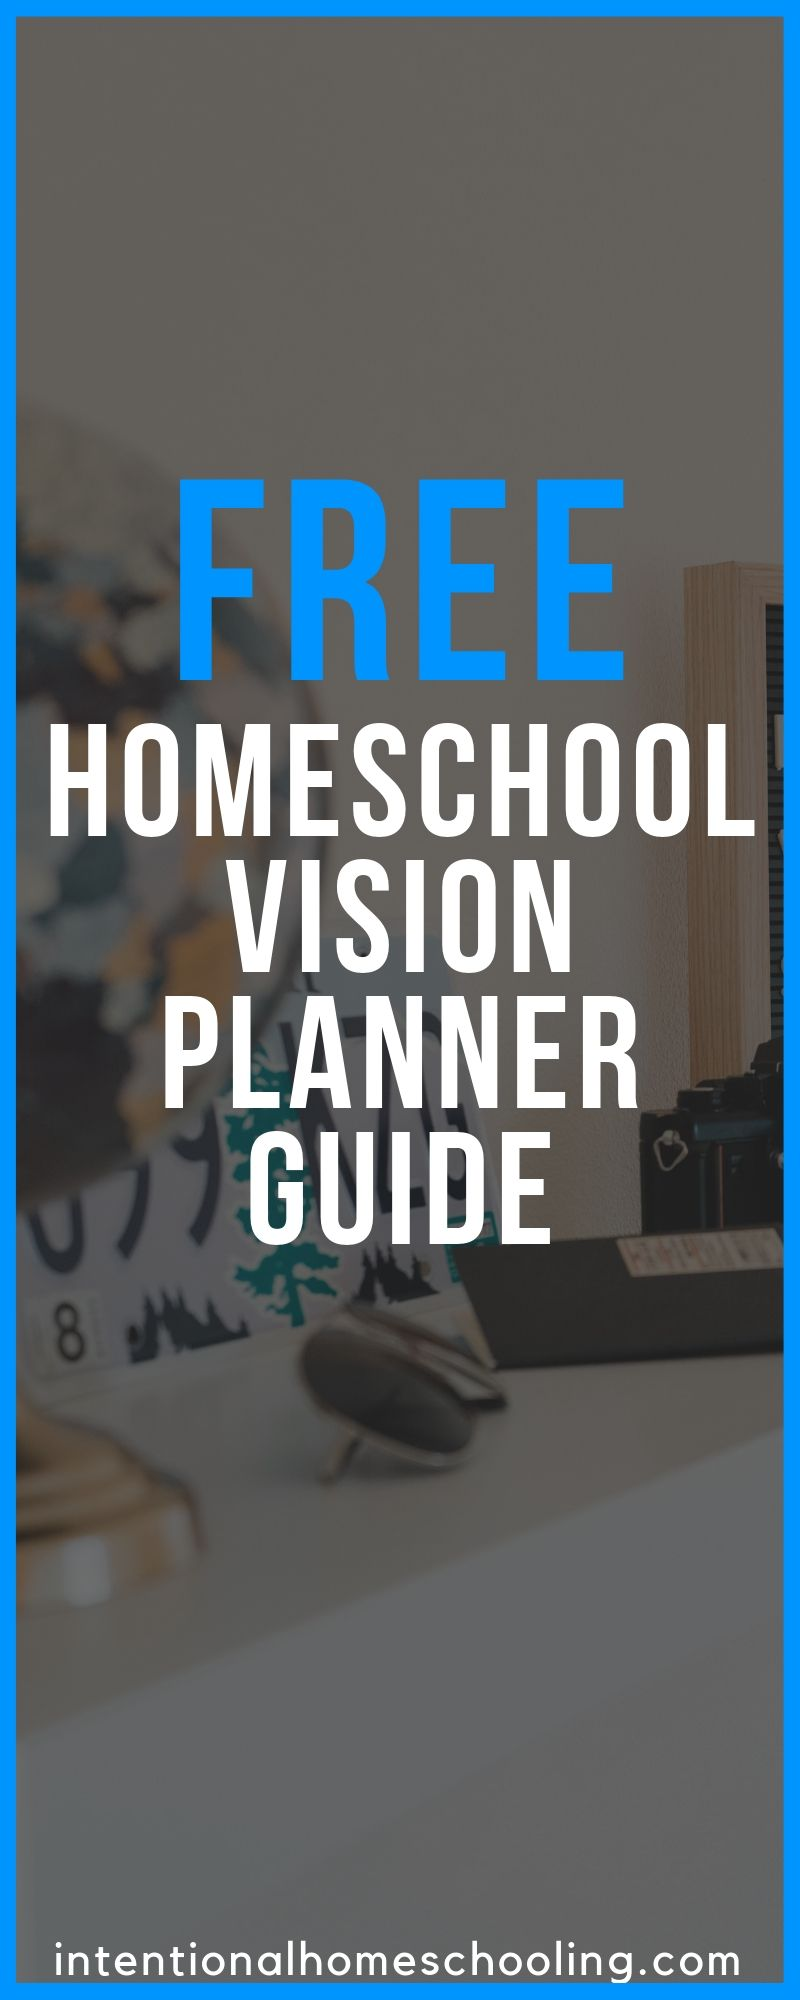 Free Homeschool Vision Planner Guide Book - Free Download - perfect for remembering why you started homeschooling and want to continue